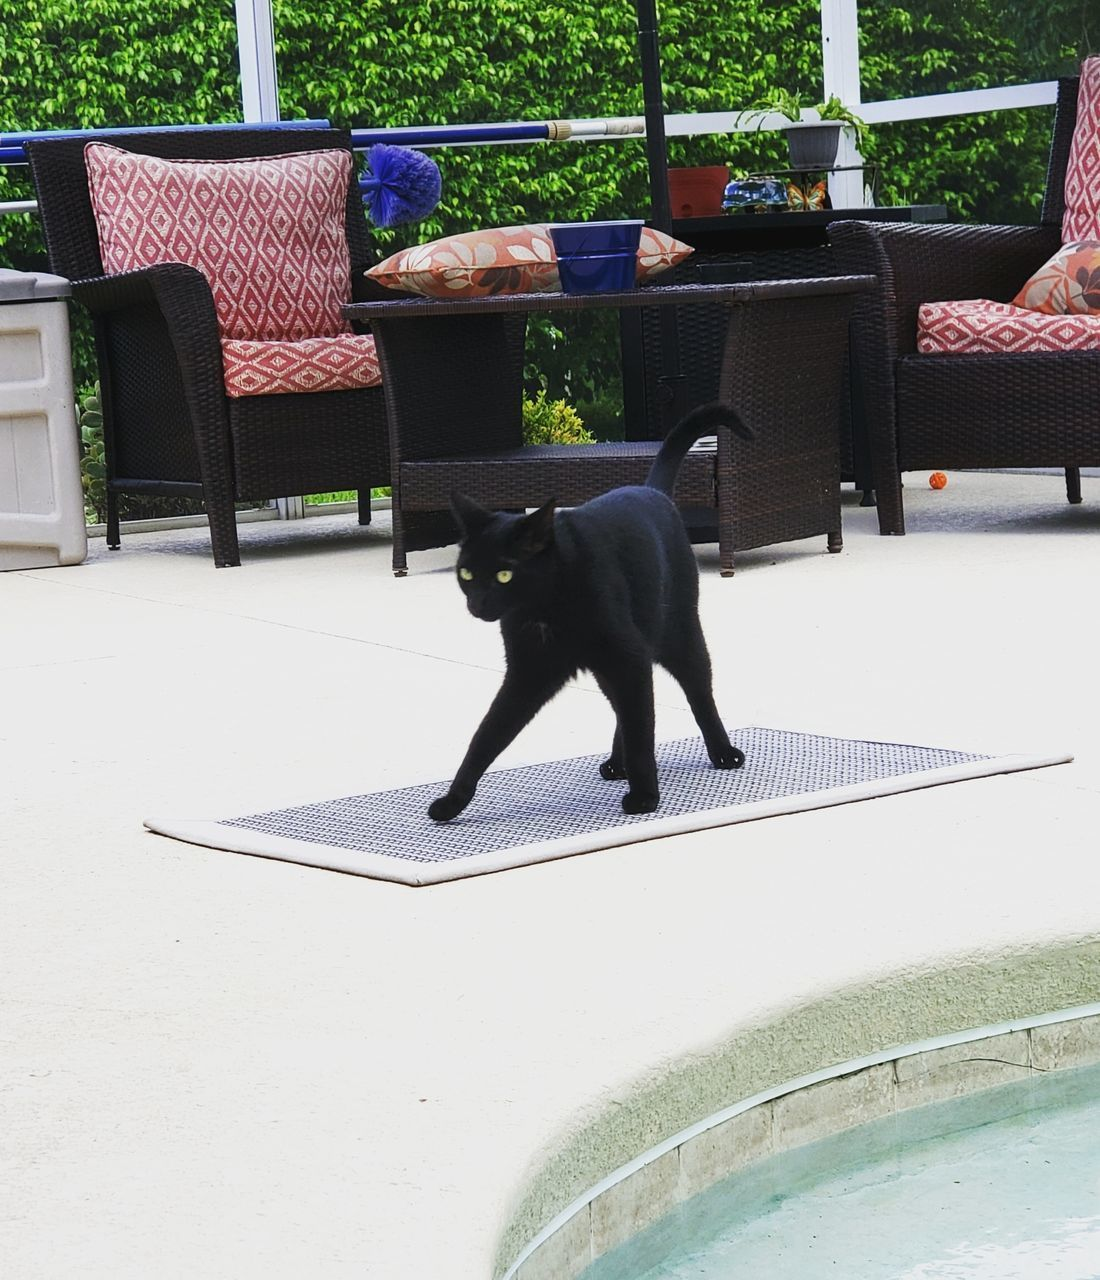 mammal, domestic animals, animal themes, animal, domestic, pets, one animal, vertebrate, seat, cat, black color, chair, no people, domestic cat, feline, day, front or back yard, relaxation, dog, canine, swimming pool